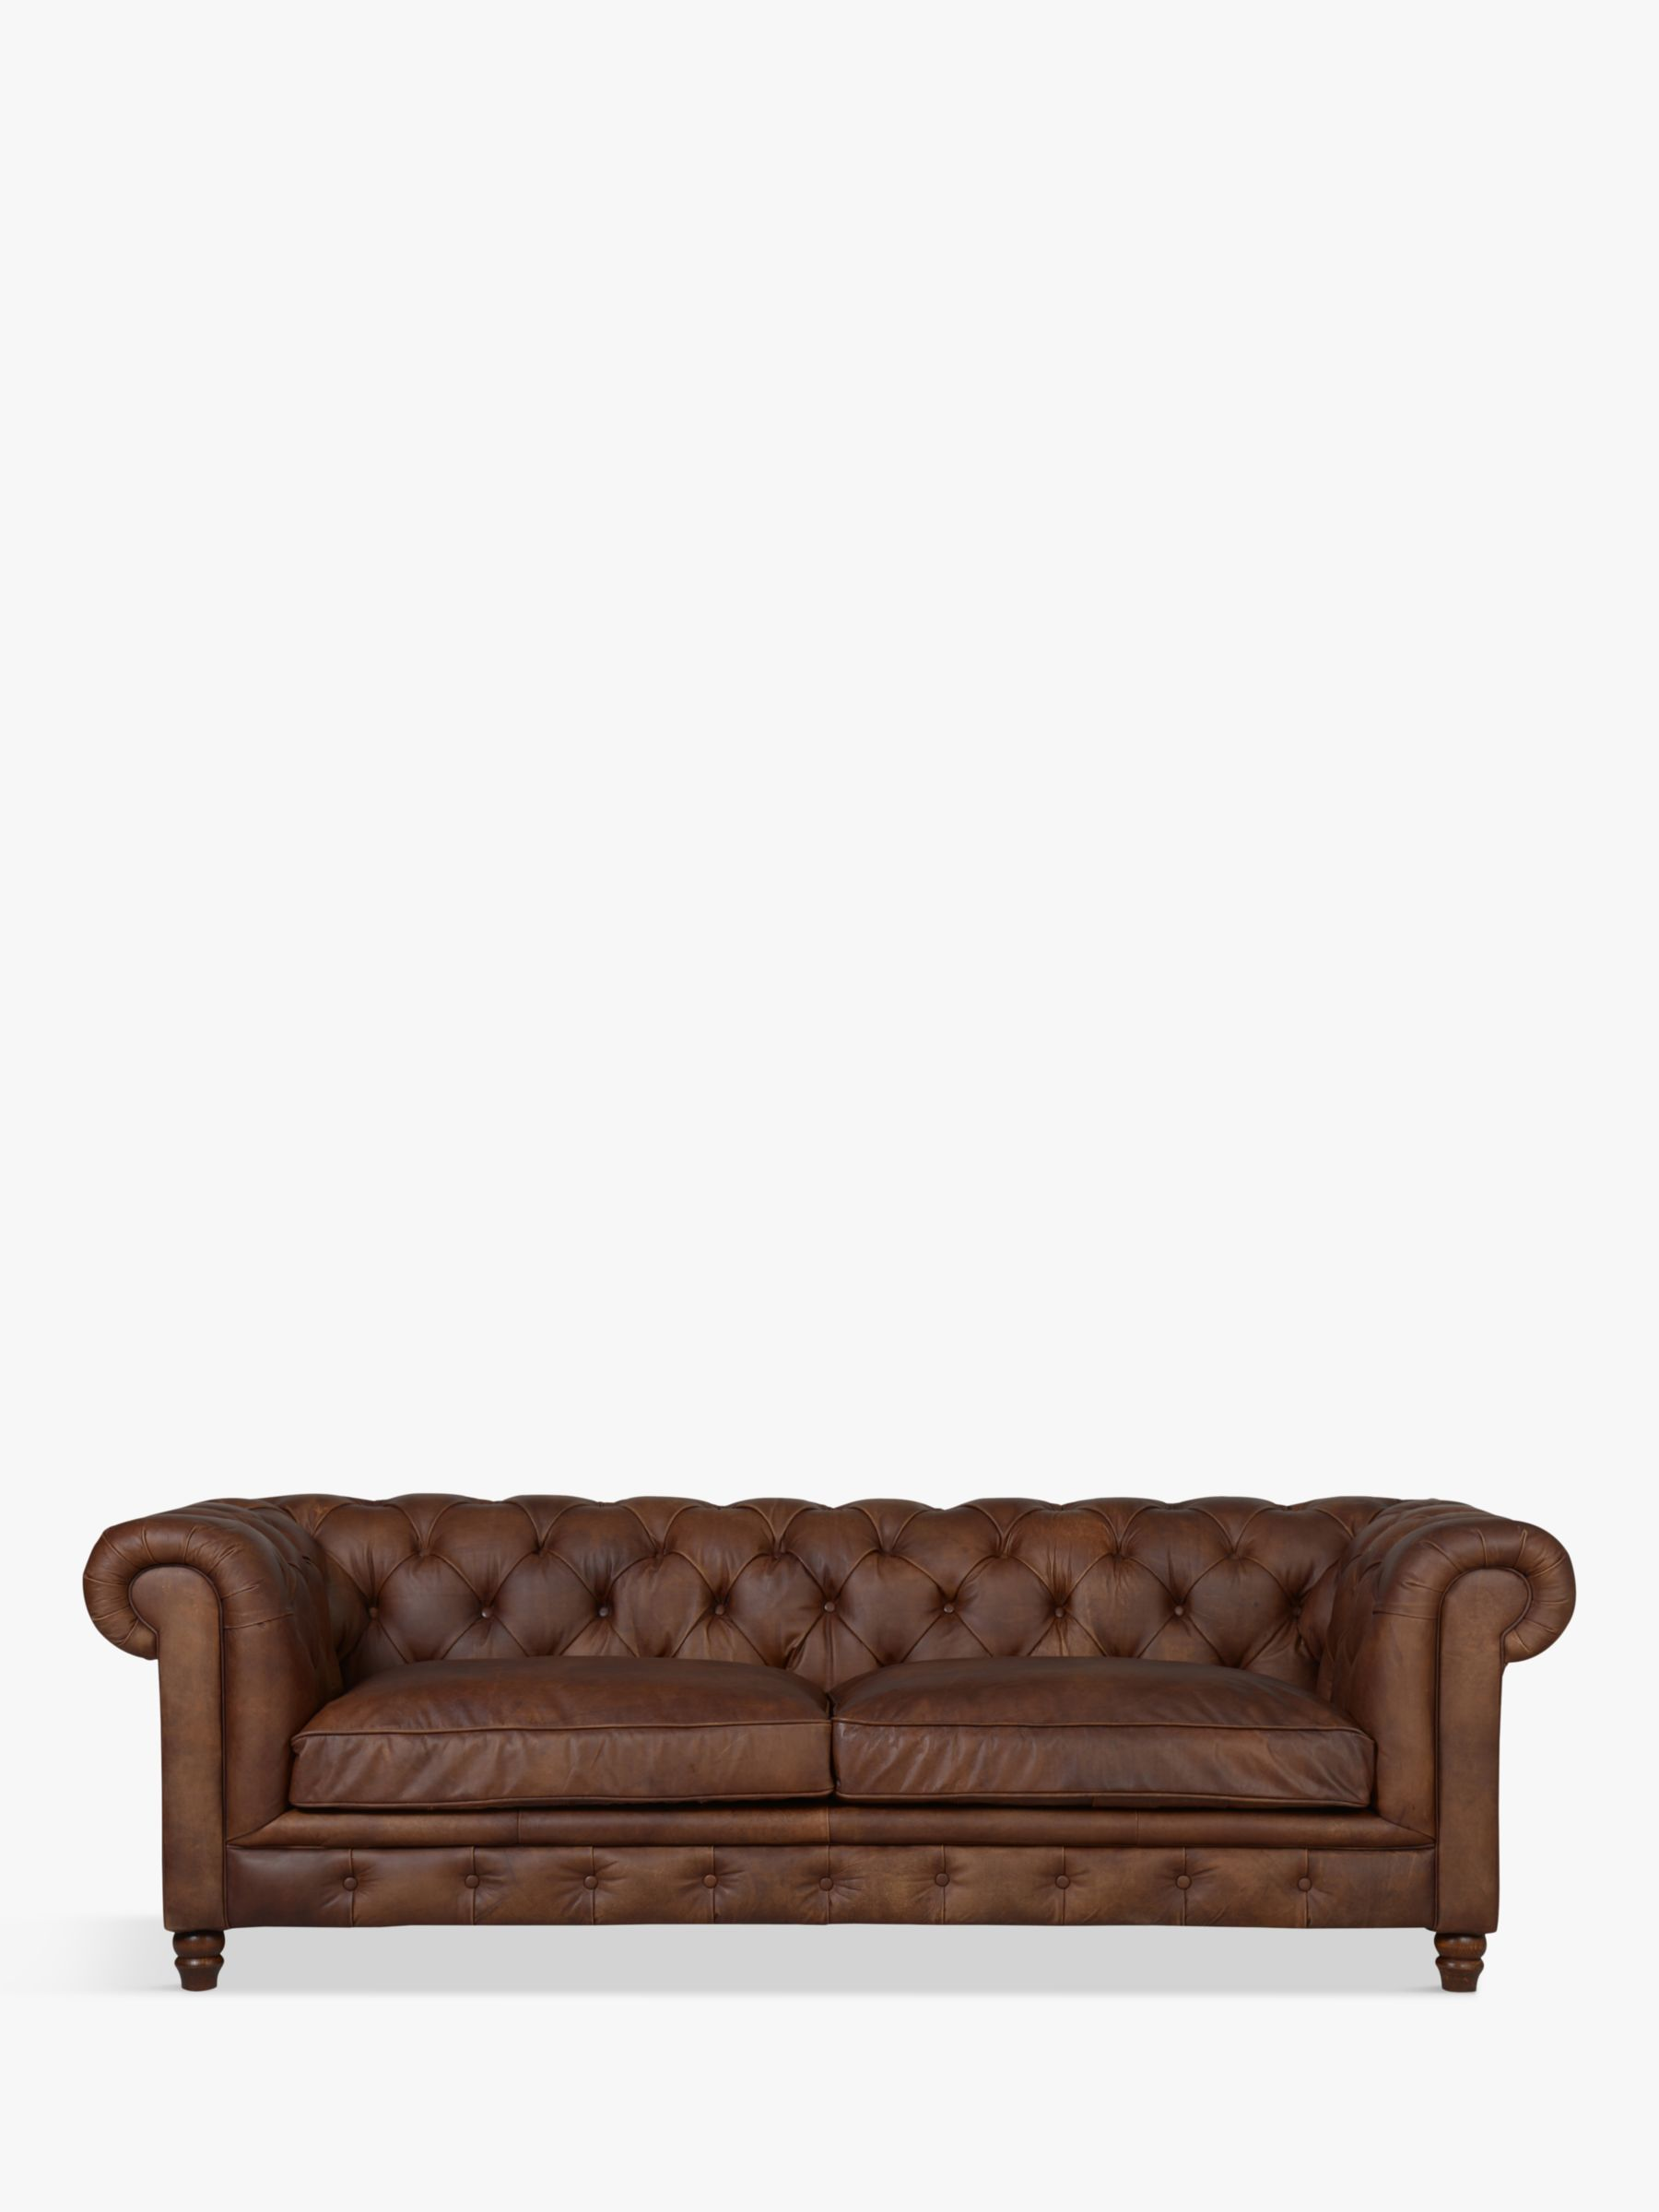 Halo Halo Earle Aniline Leather Chesterfield Grand Sofa, Antique Whisky